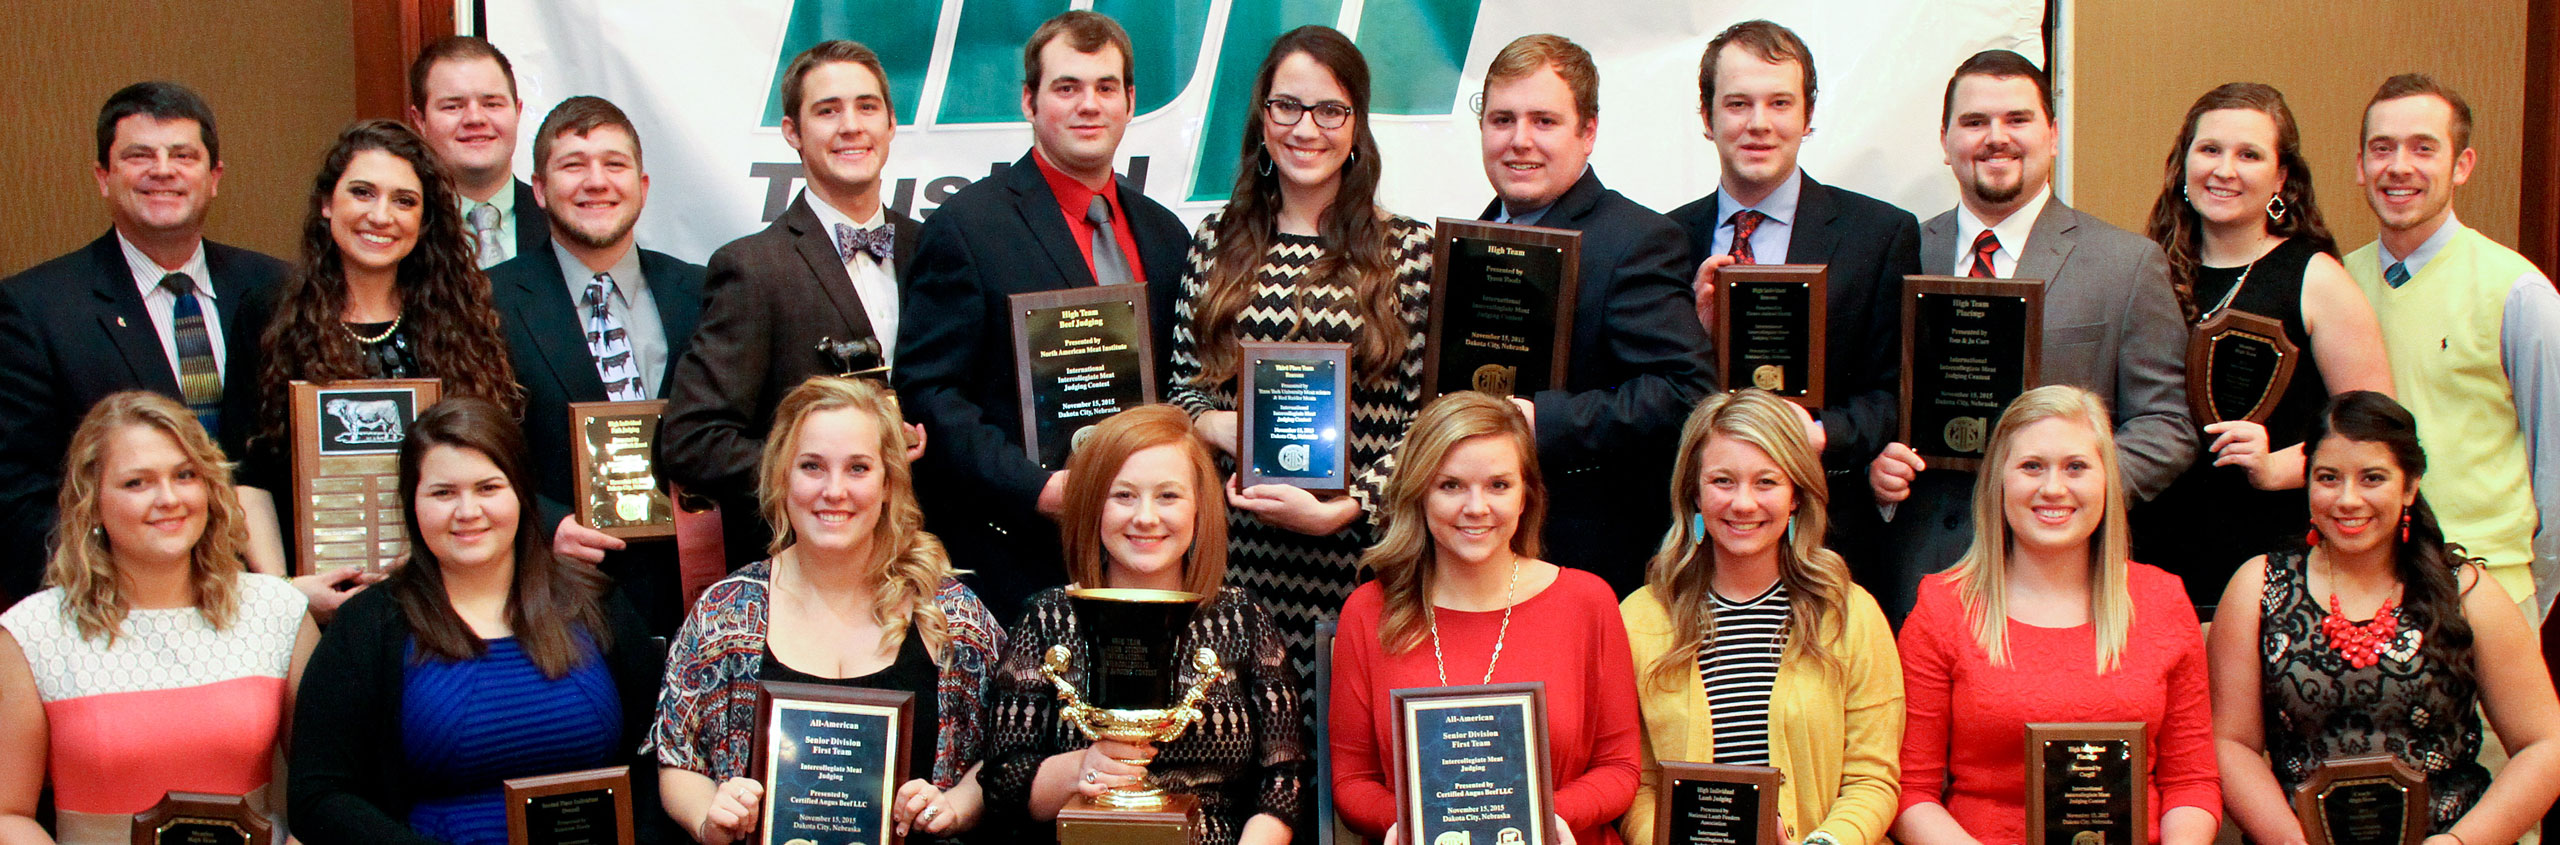 Texas Tech Named 2015 National Champion Meat Judging Team